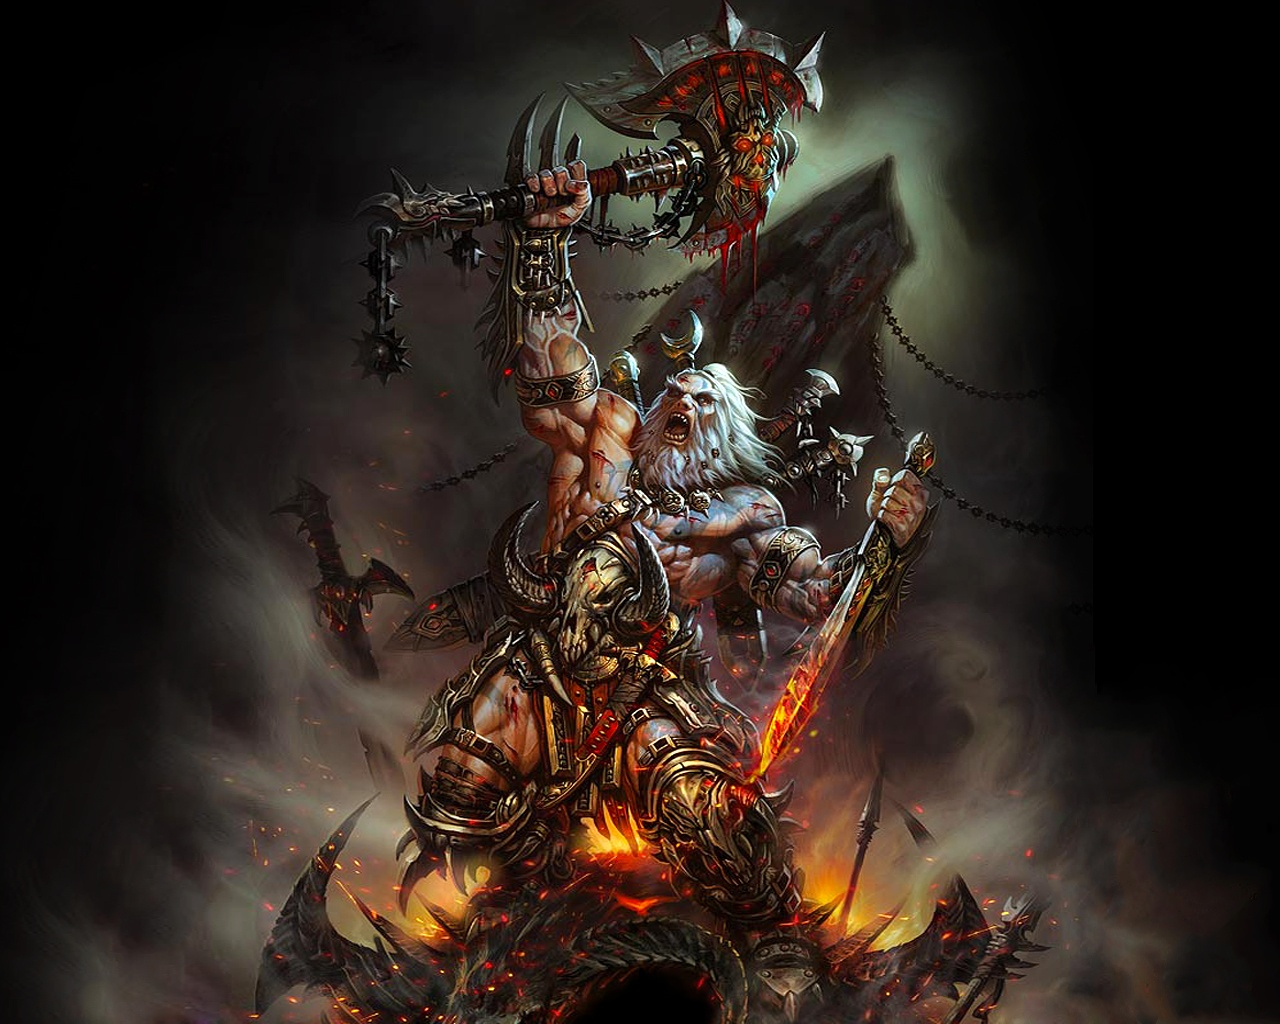 Diablo 3 Hd Wallpaper Free Hd Wallpapers